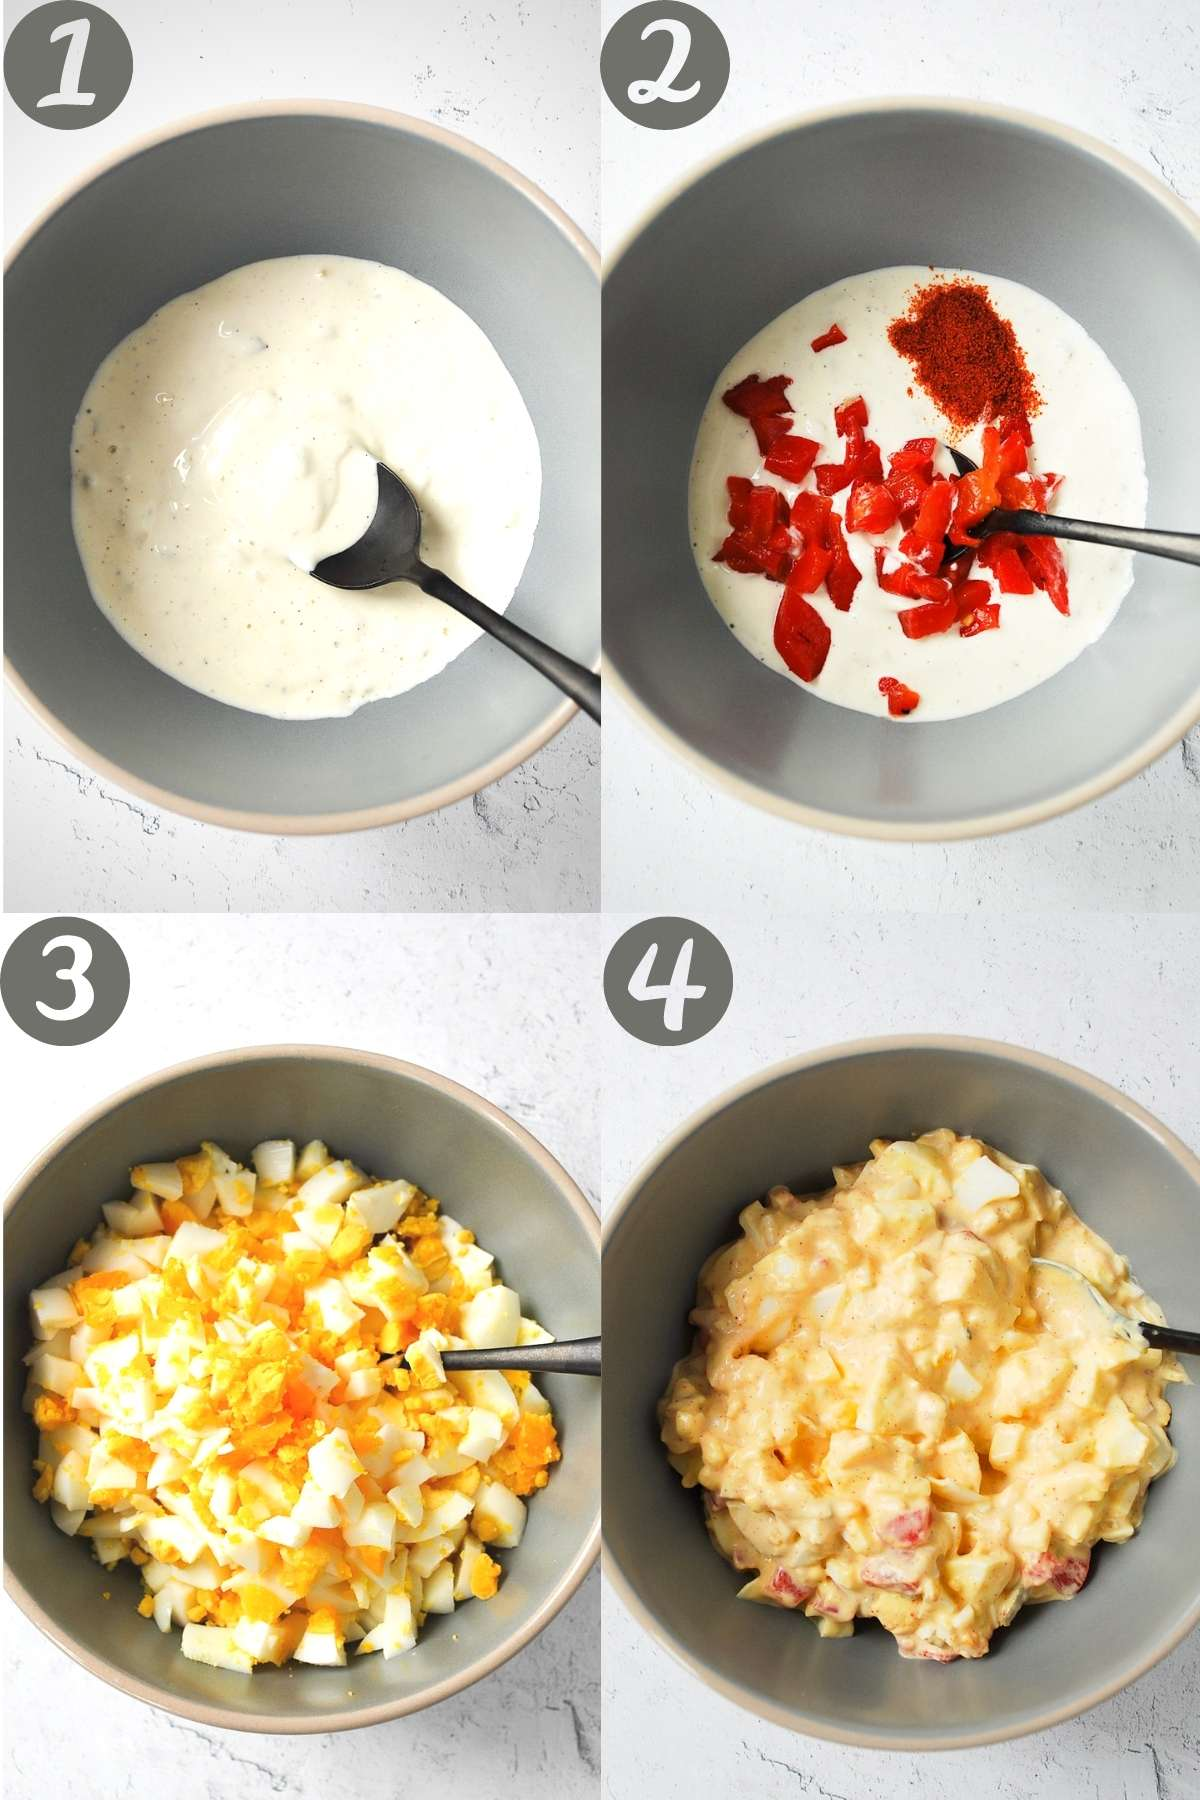 step by step photos of making the egg salad in a bowl